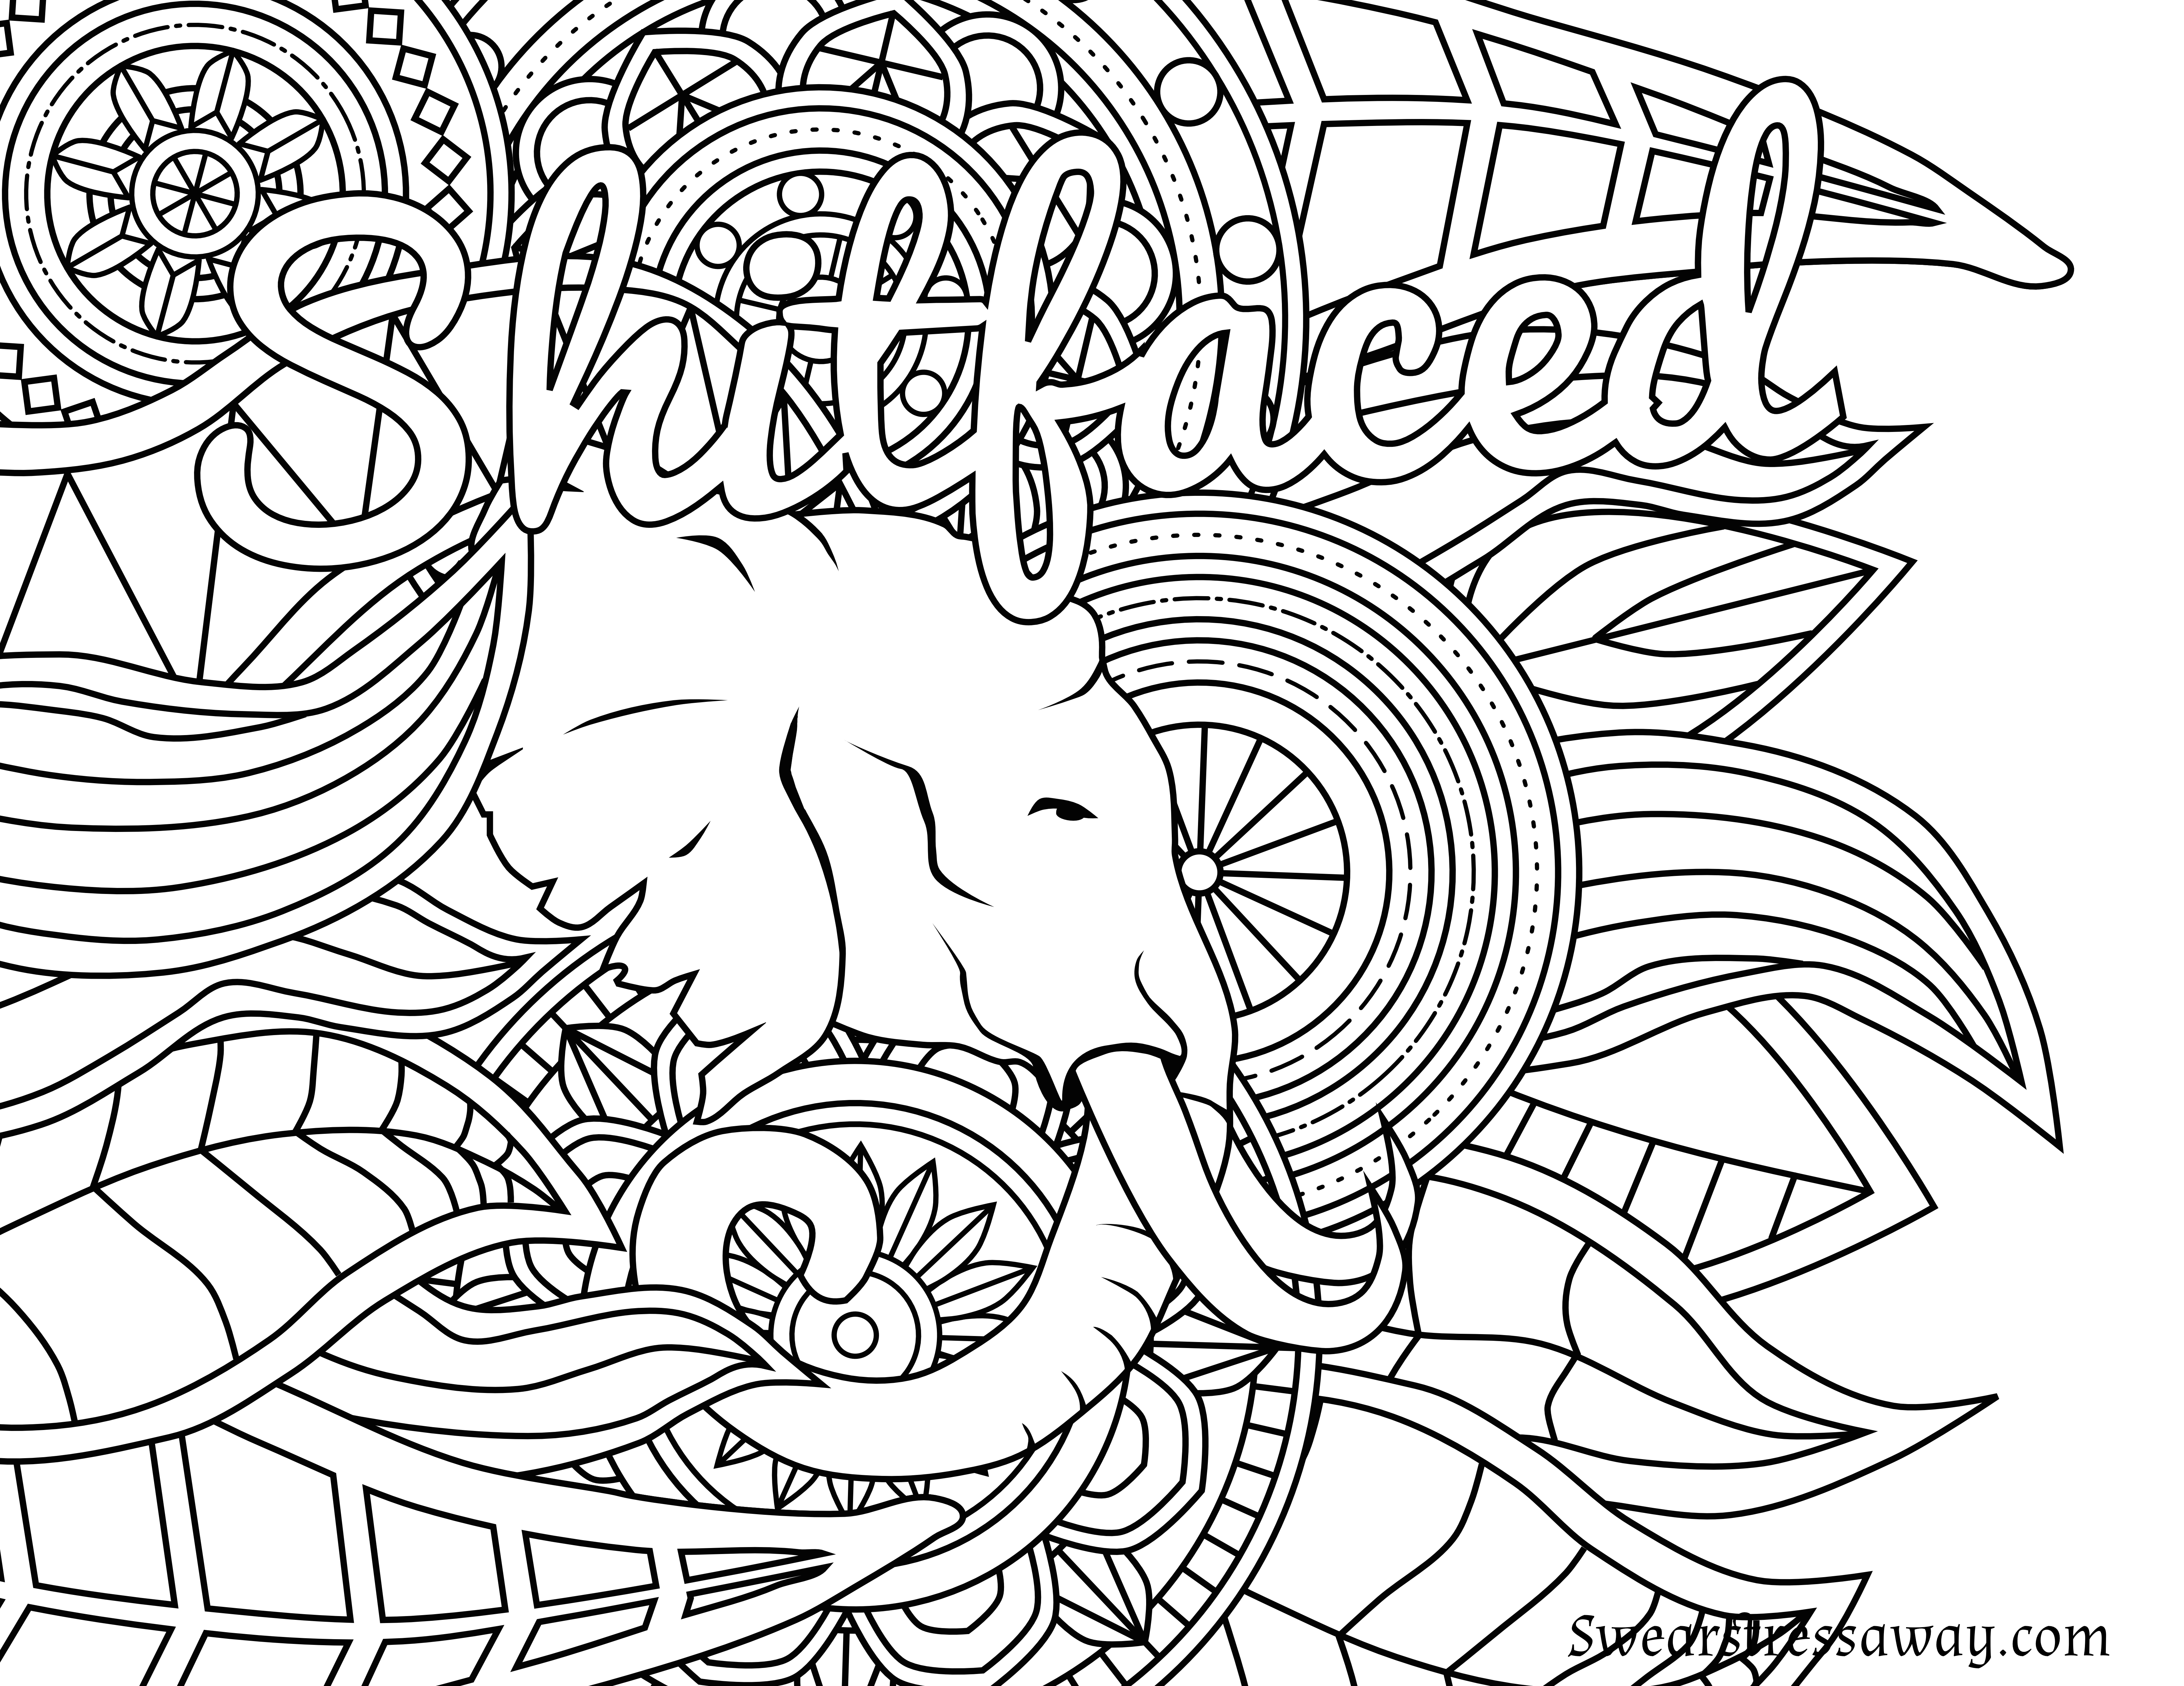 Free Printable Coloring Page - Shitfaced - Swear Word Coloring Page - Free Printable Swear Word Coloring Pages